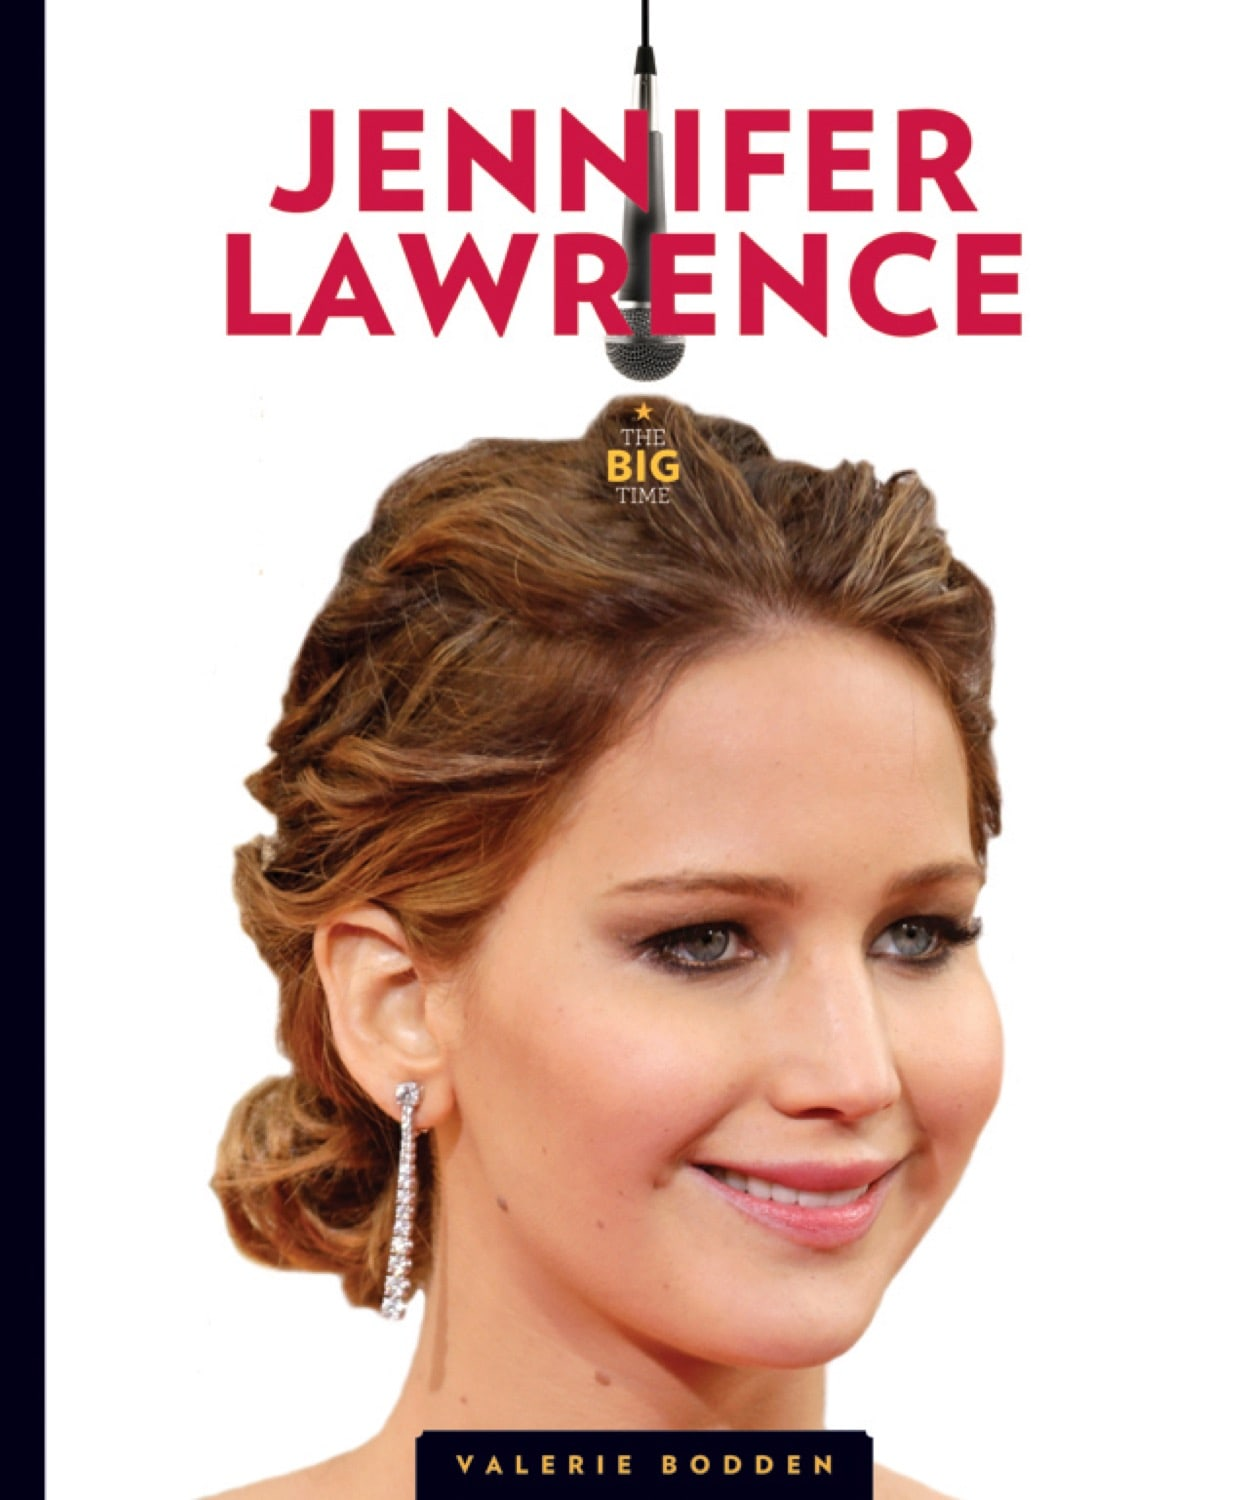 The Big Time: Jennifer Lawrence